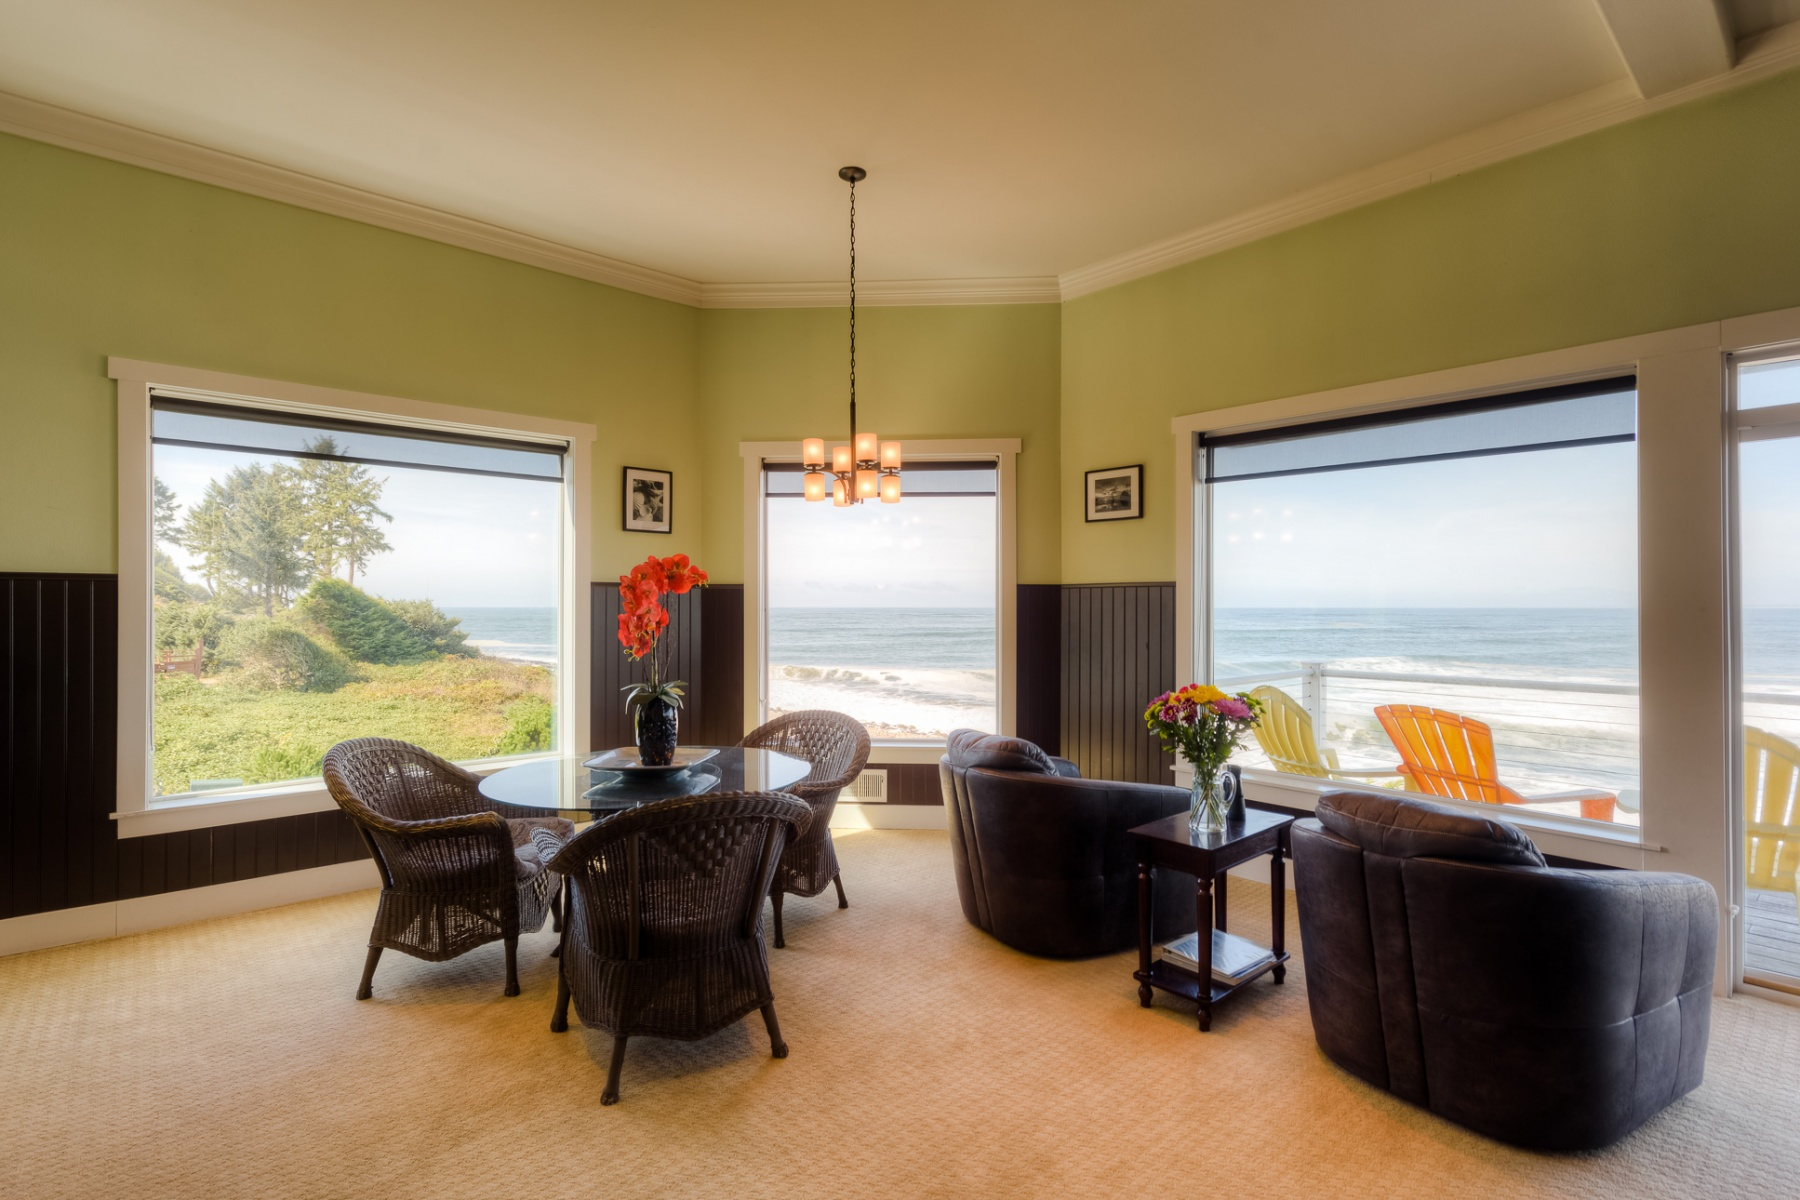 Additional photo for property listing at 3182 Sunset Blvd 3182 Sunset BLVD Seaside, Oregon 97138 United States